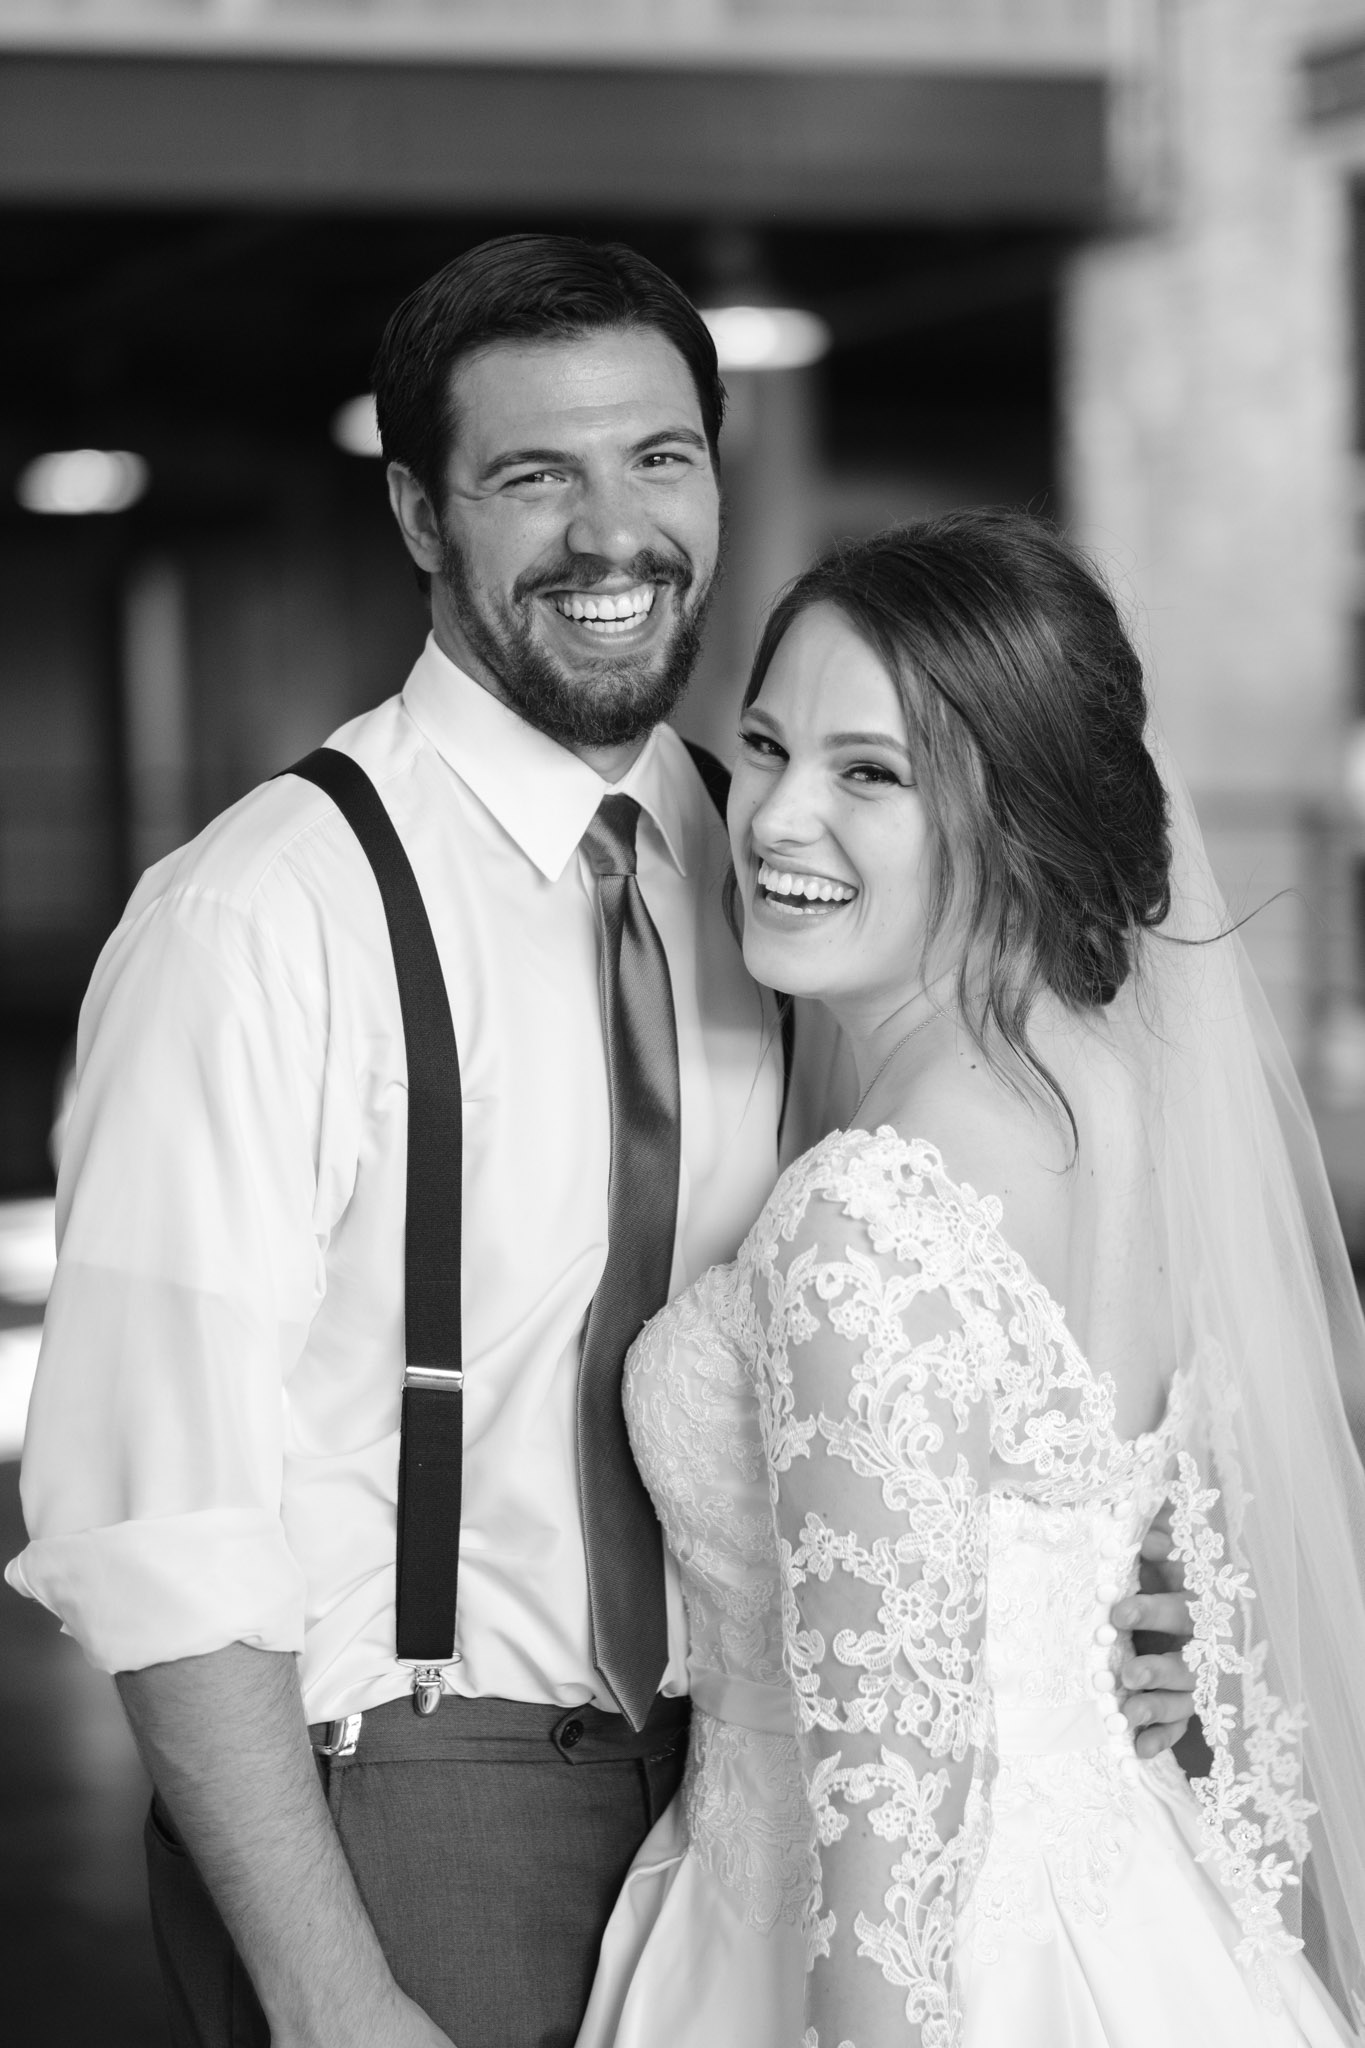 Couple embracing on their wedding day at Prairie Street Brewhouse entryway in Rockford, Illinois